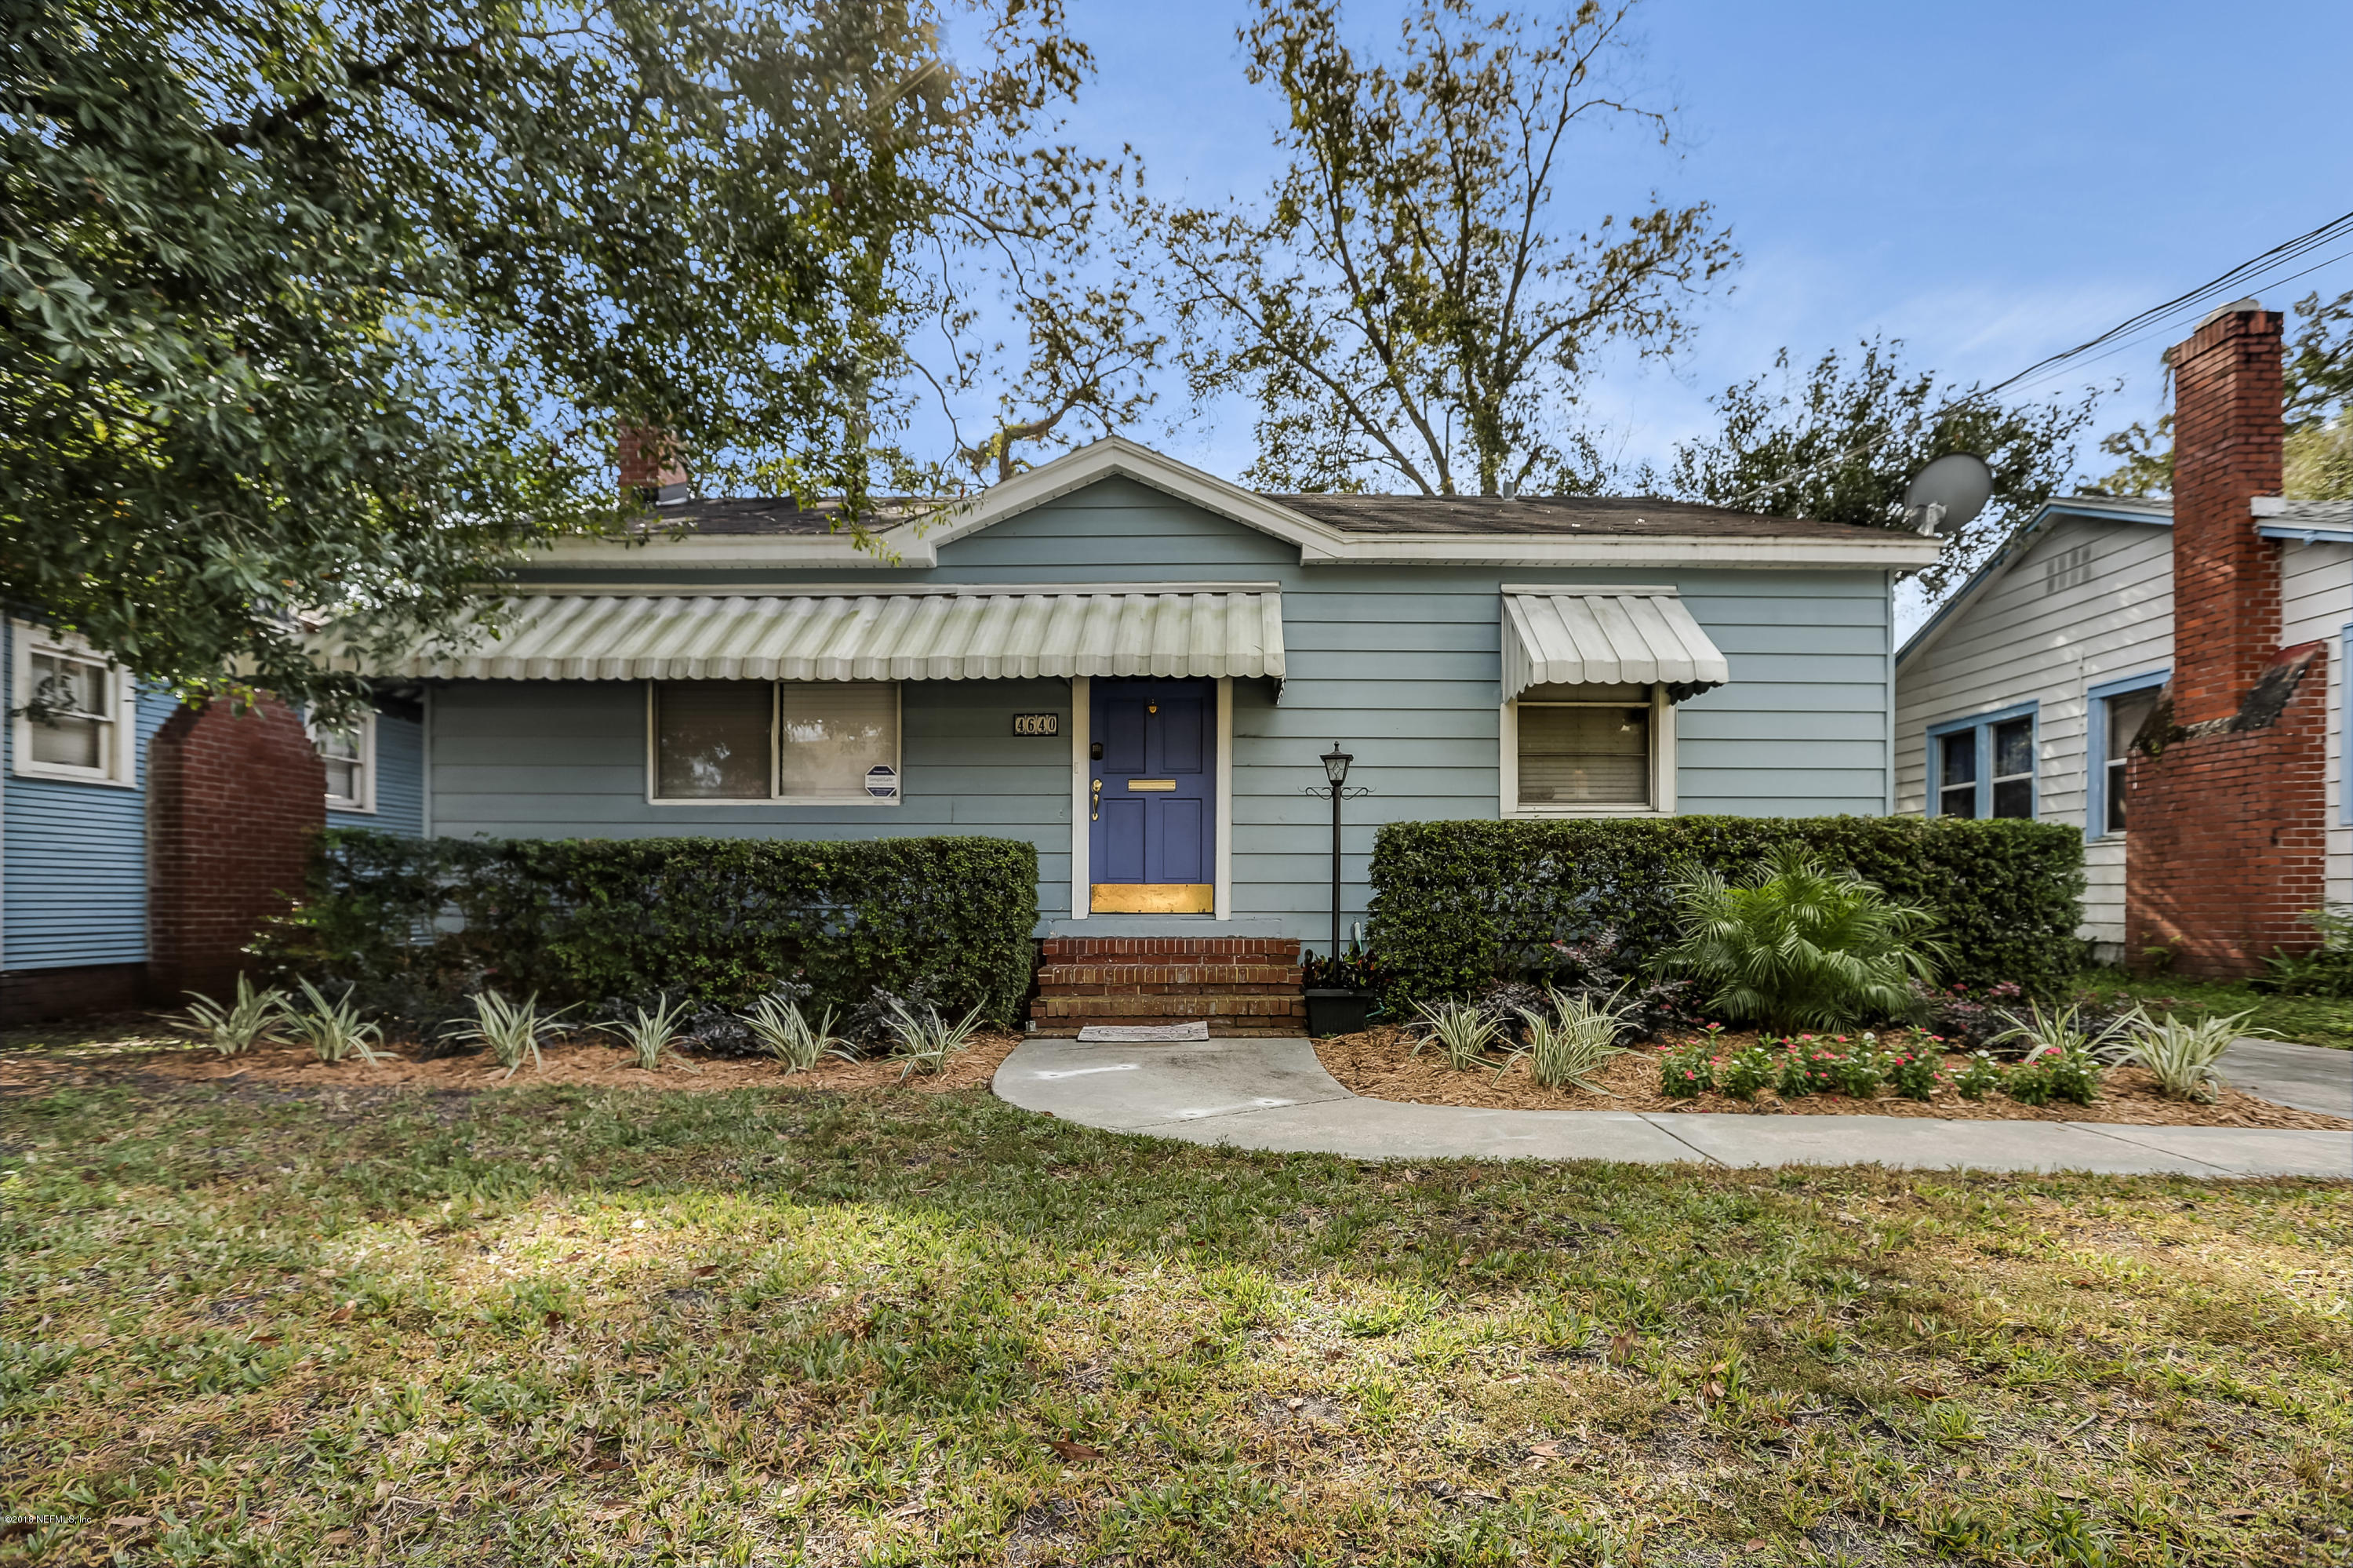 4640 POST, JACKSONVILLE, FLORIDA 32205, 2 Bedrooms Bedrooms, ,1 BathroomBathrooms,Residential - single family,For sale,POST,969821